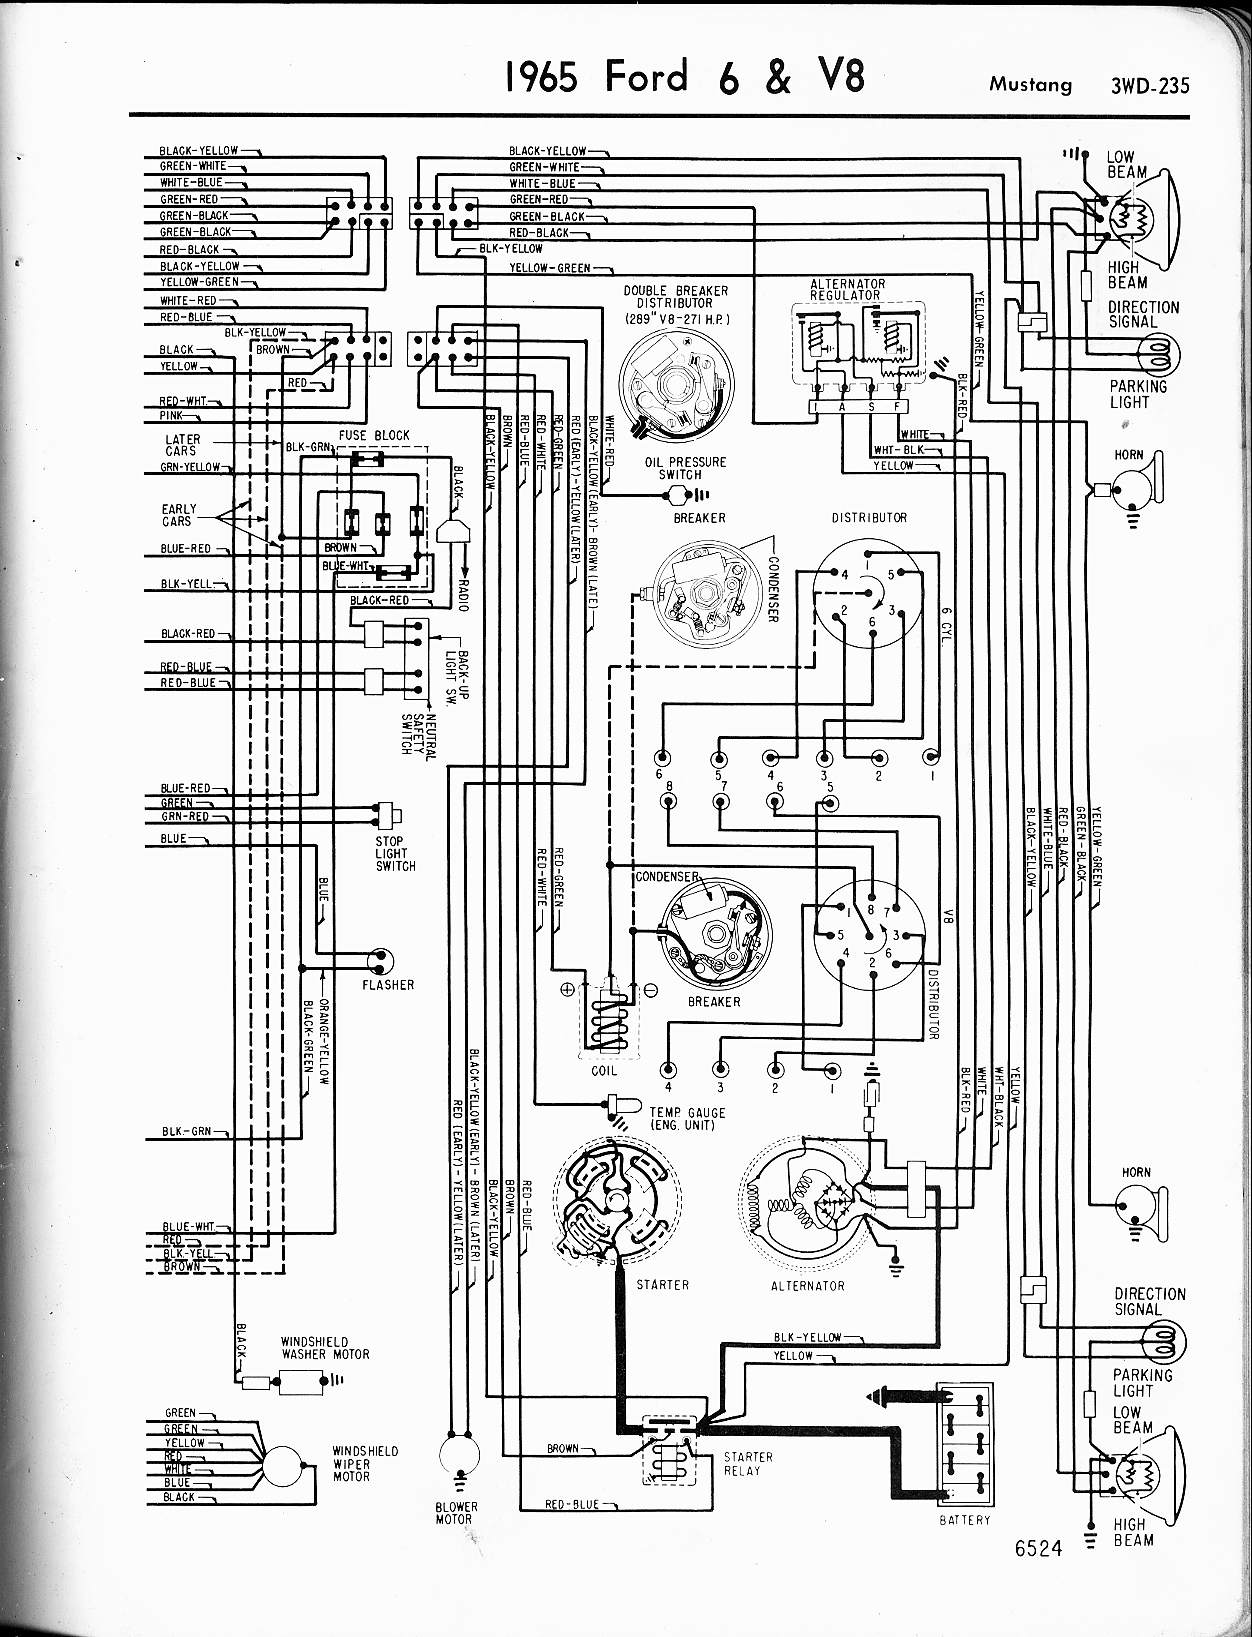 MWire5765 235 mustang wiring harness diagram 2005 2009 mustang wiring harness 1965 ford mustang wiring diagrams at mr168.co